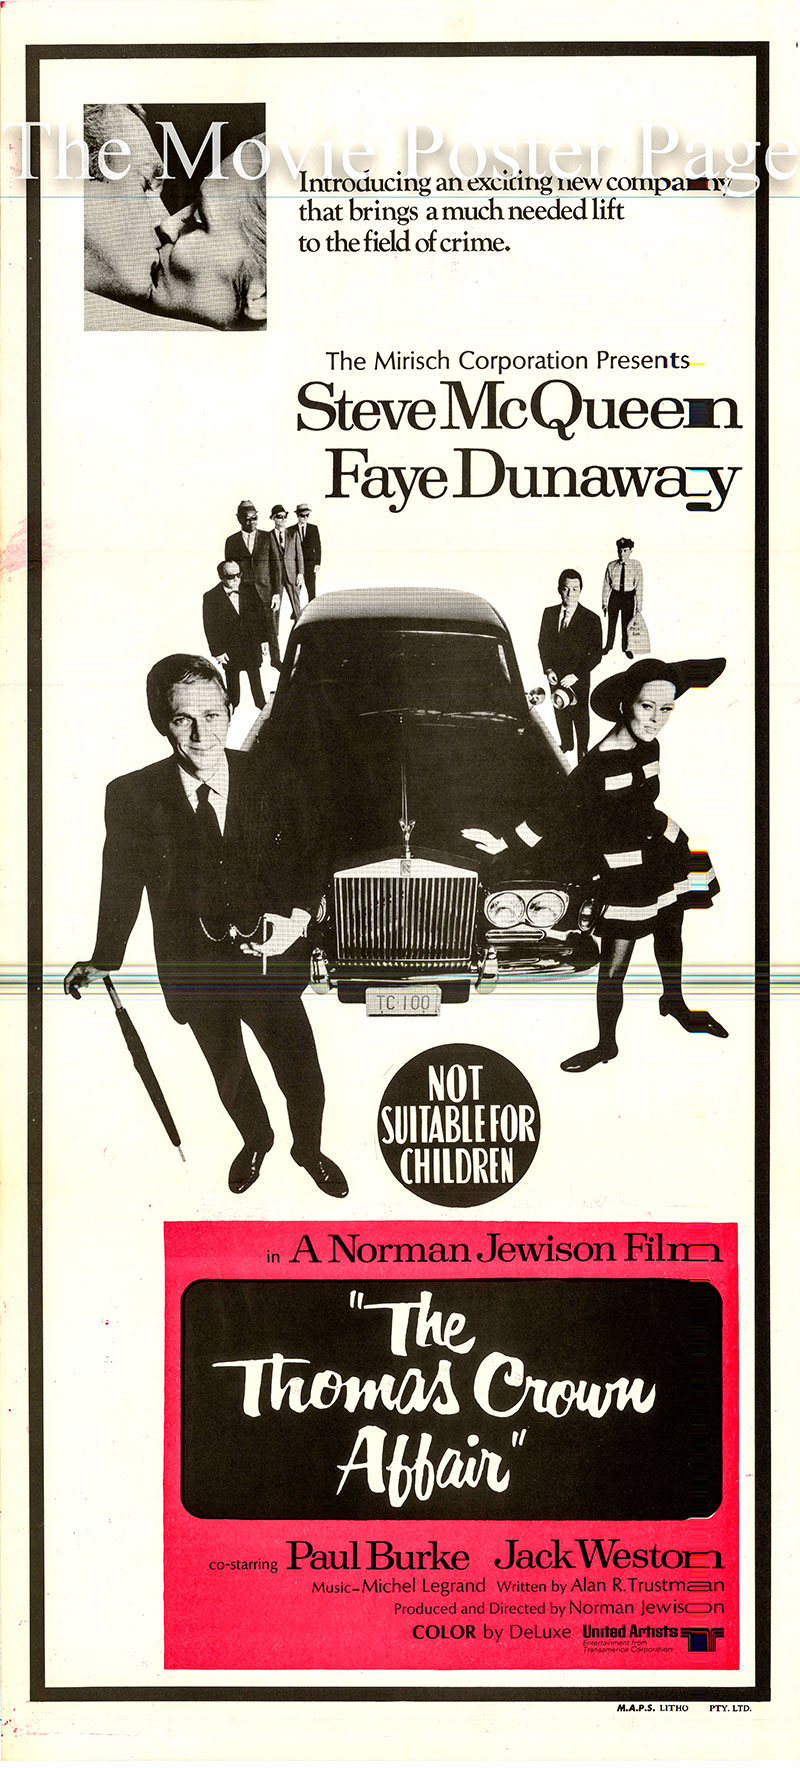 Pictured is an Australian daybill poster for the 1968 Norman Jewison film <i>The Thomas Crown Affair</i> written by Alan Trustman and starring Steve McQueen as Thomas Crown.